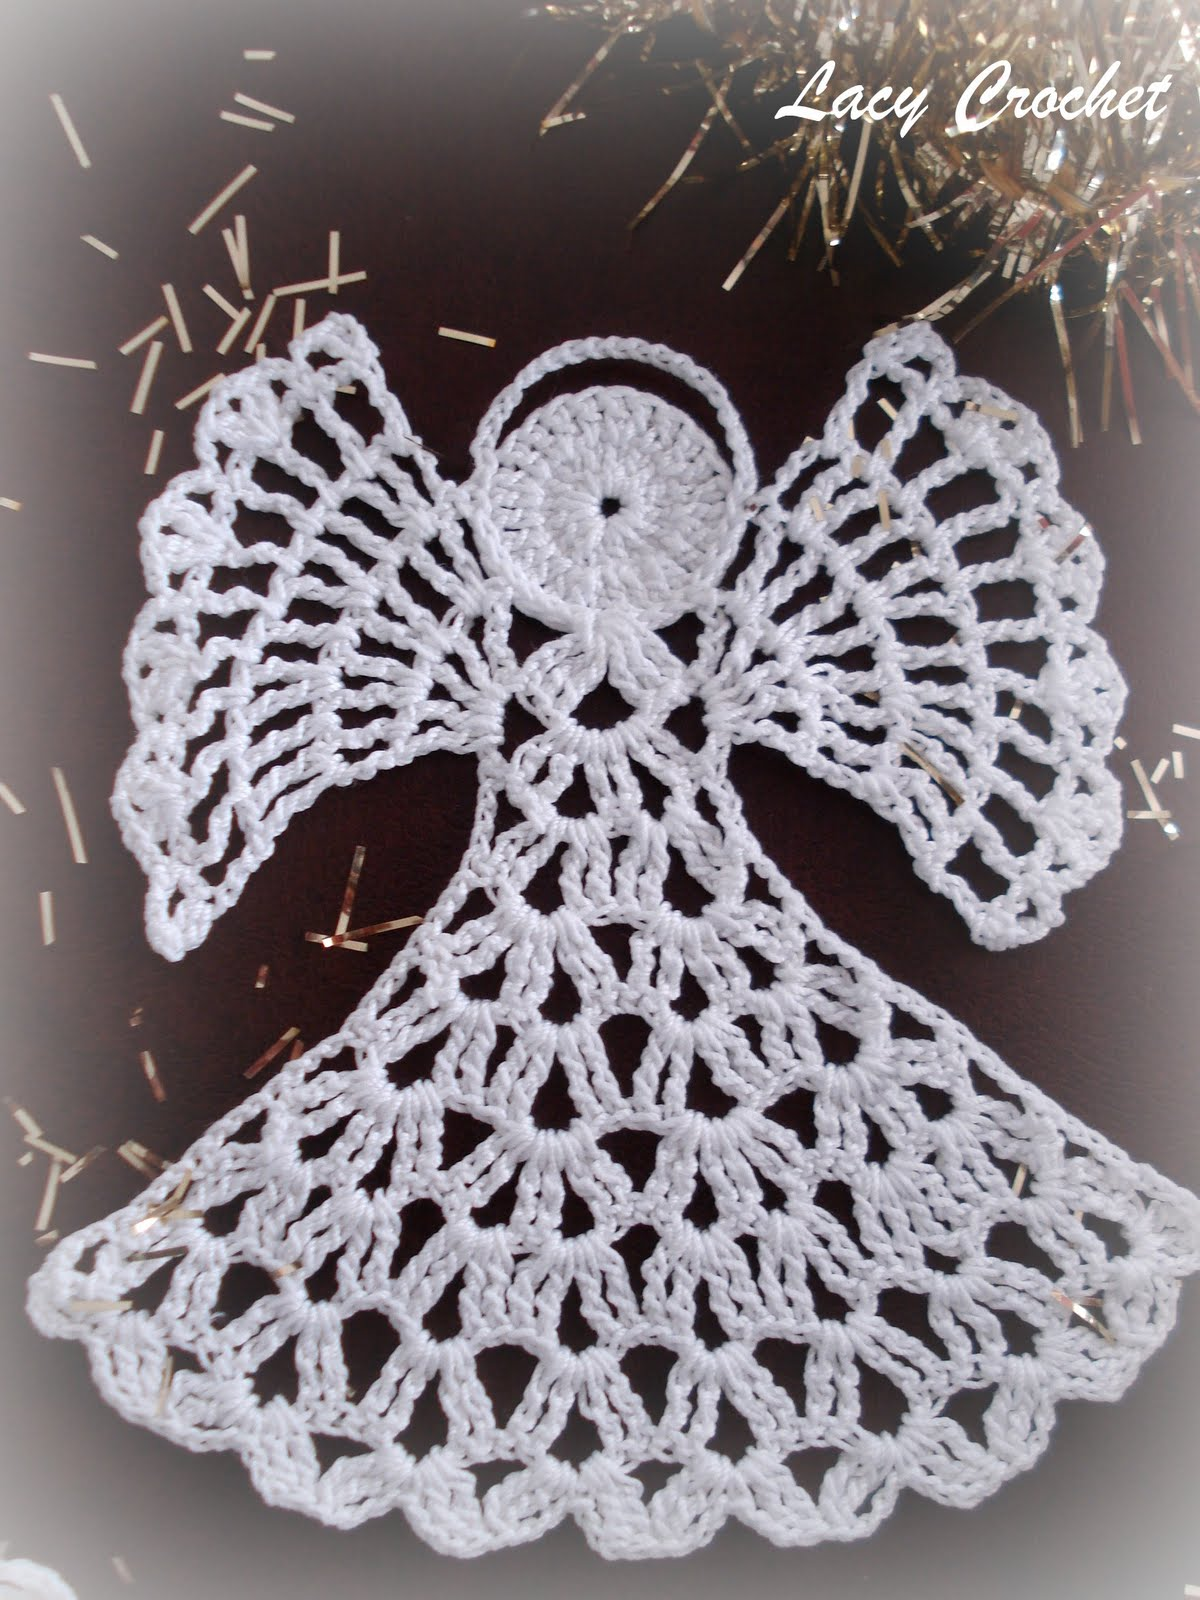 Crochet Angel : crocheted angel